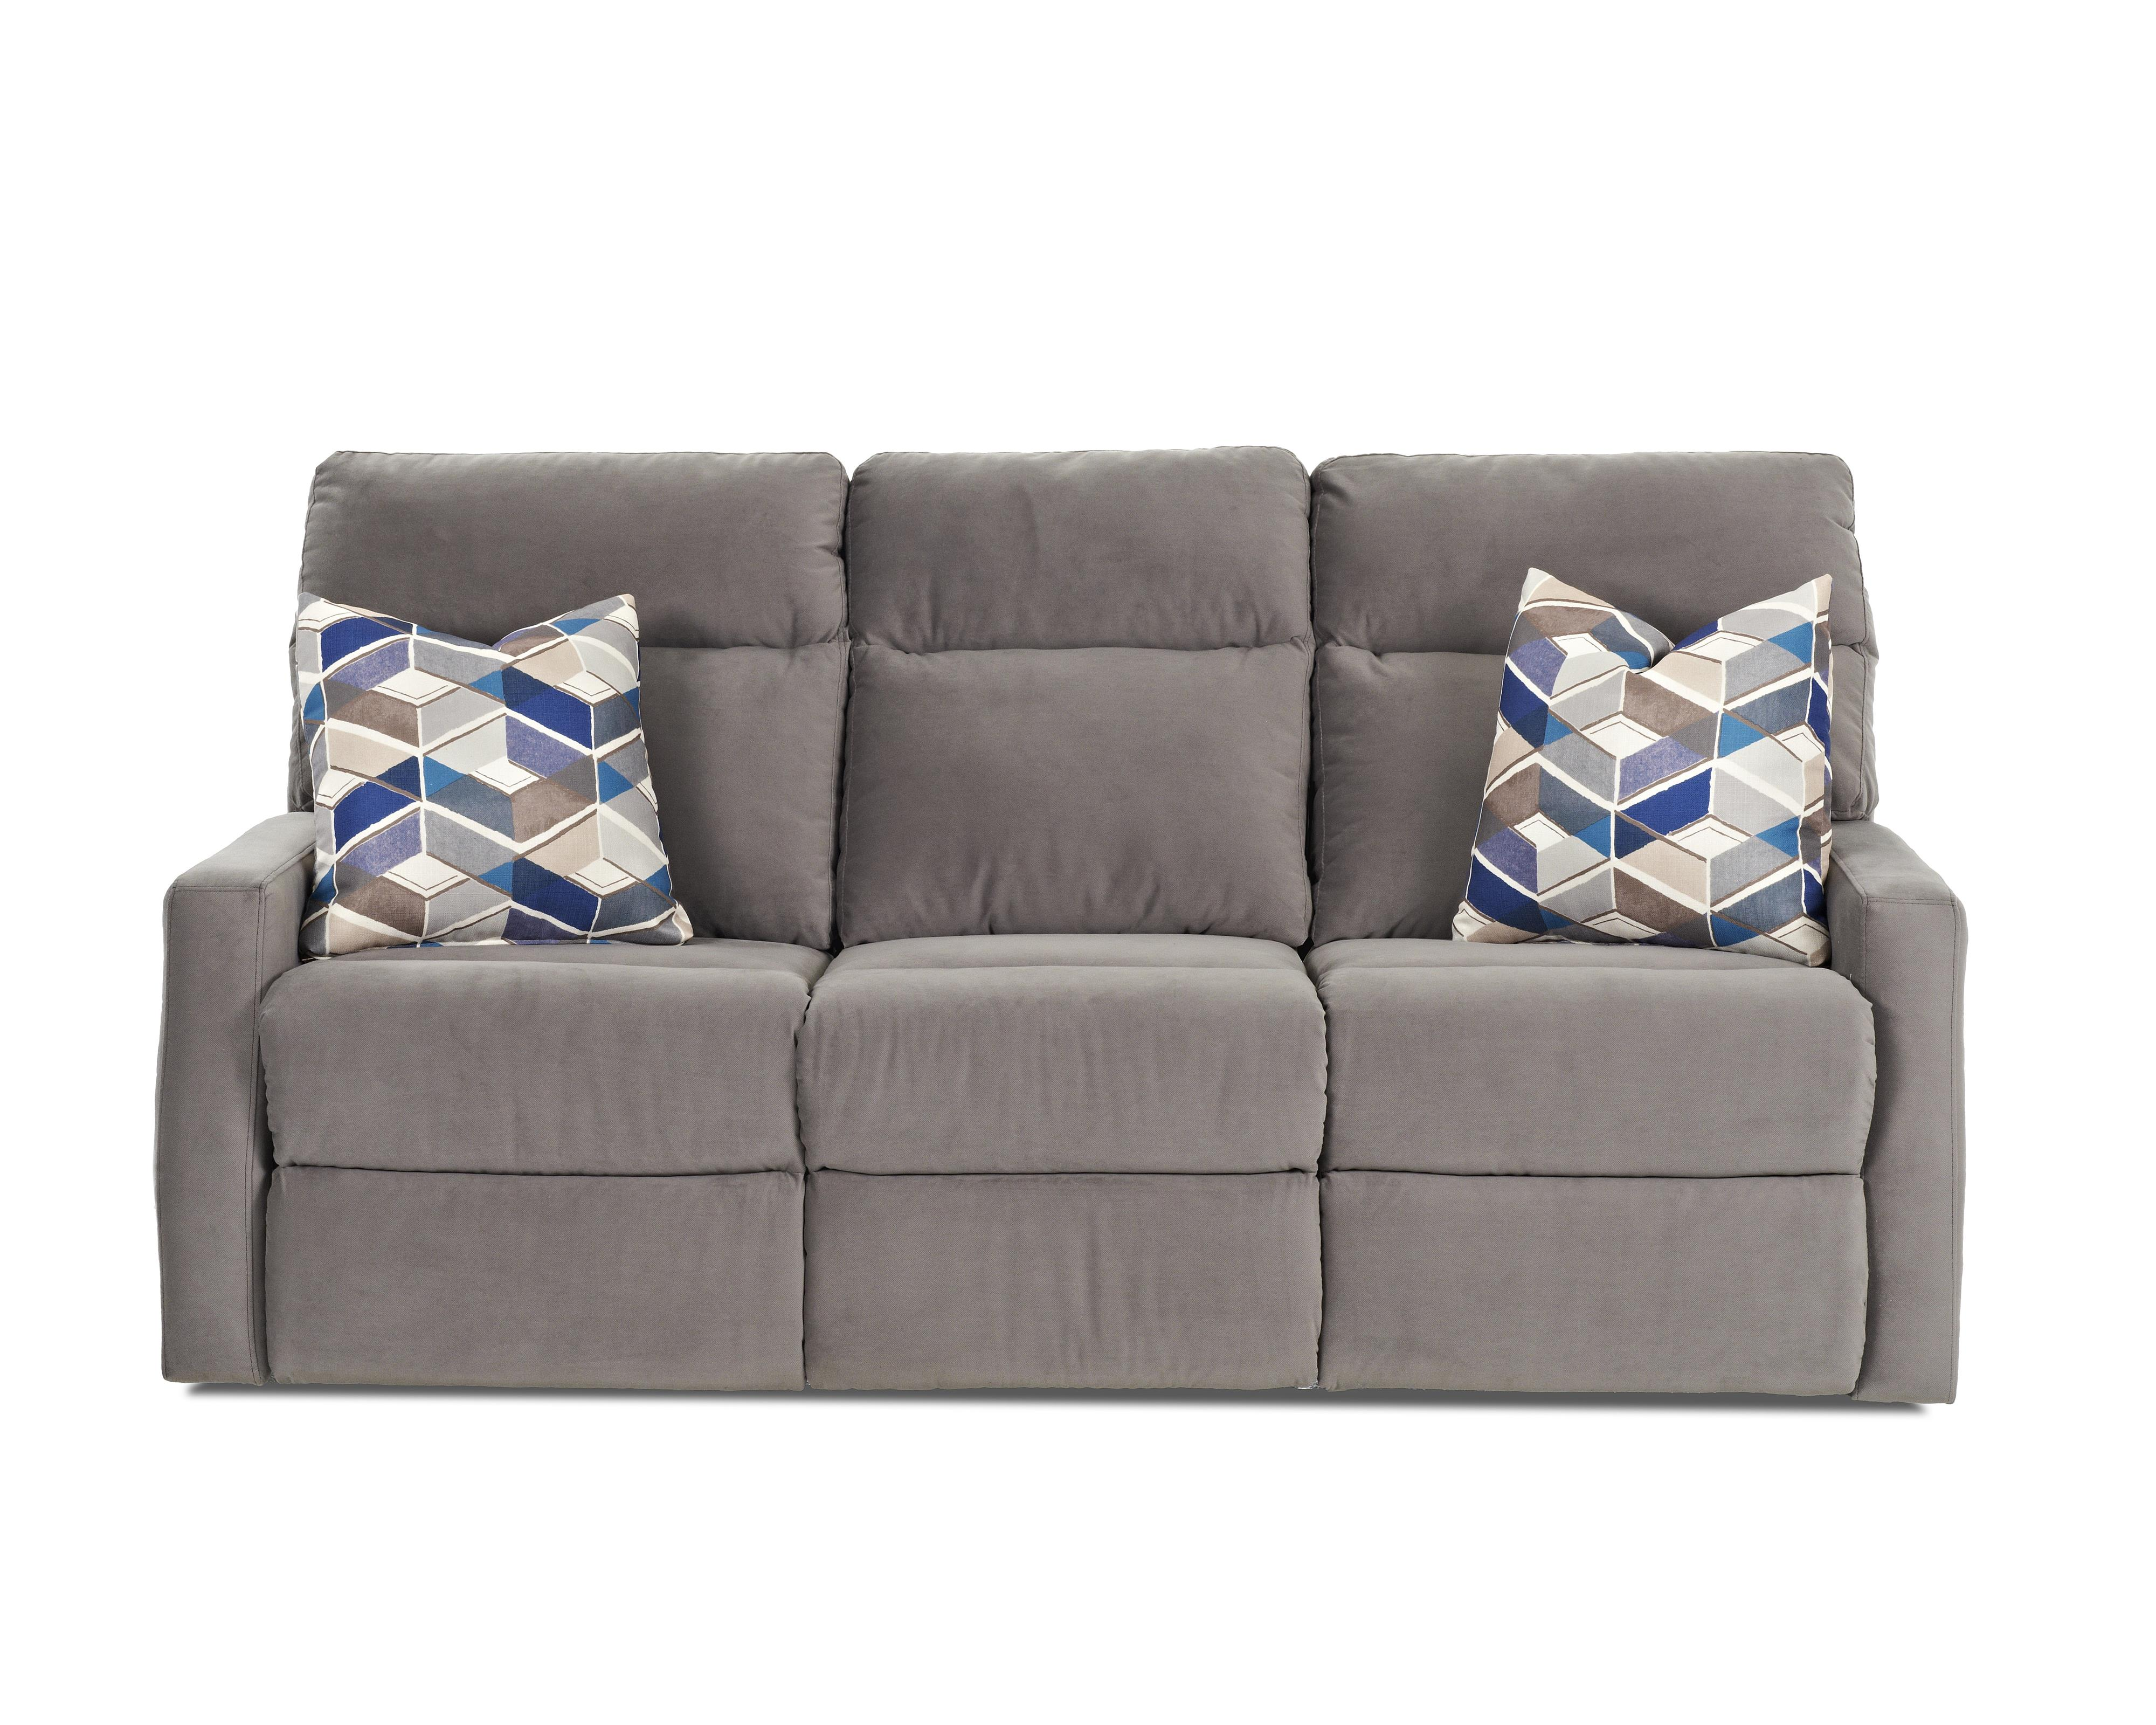 klaussner grand power reclining sofa sectional canada monticello with soft track